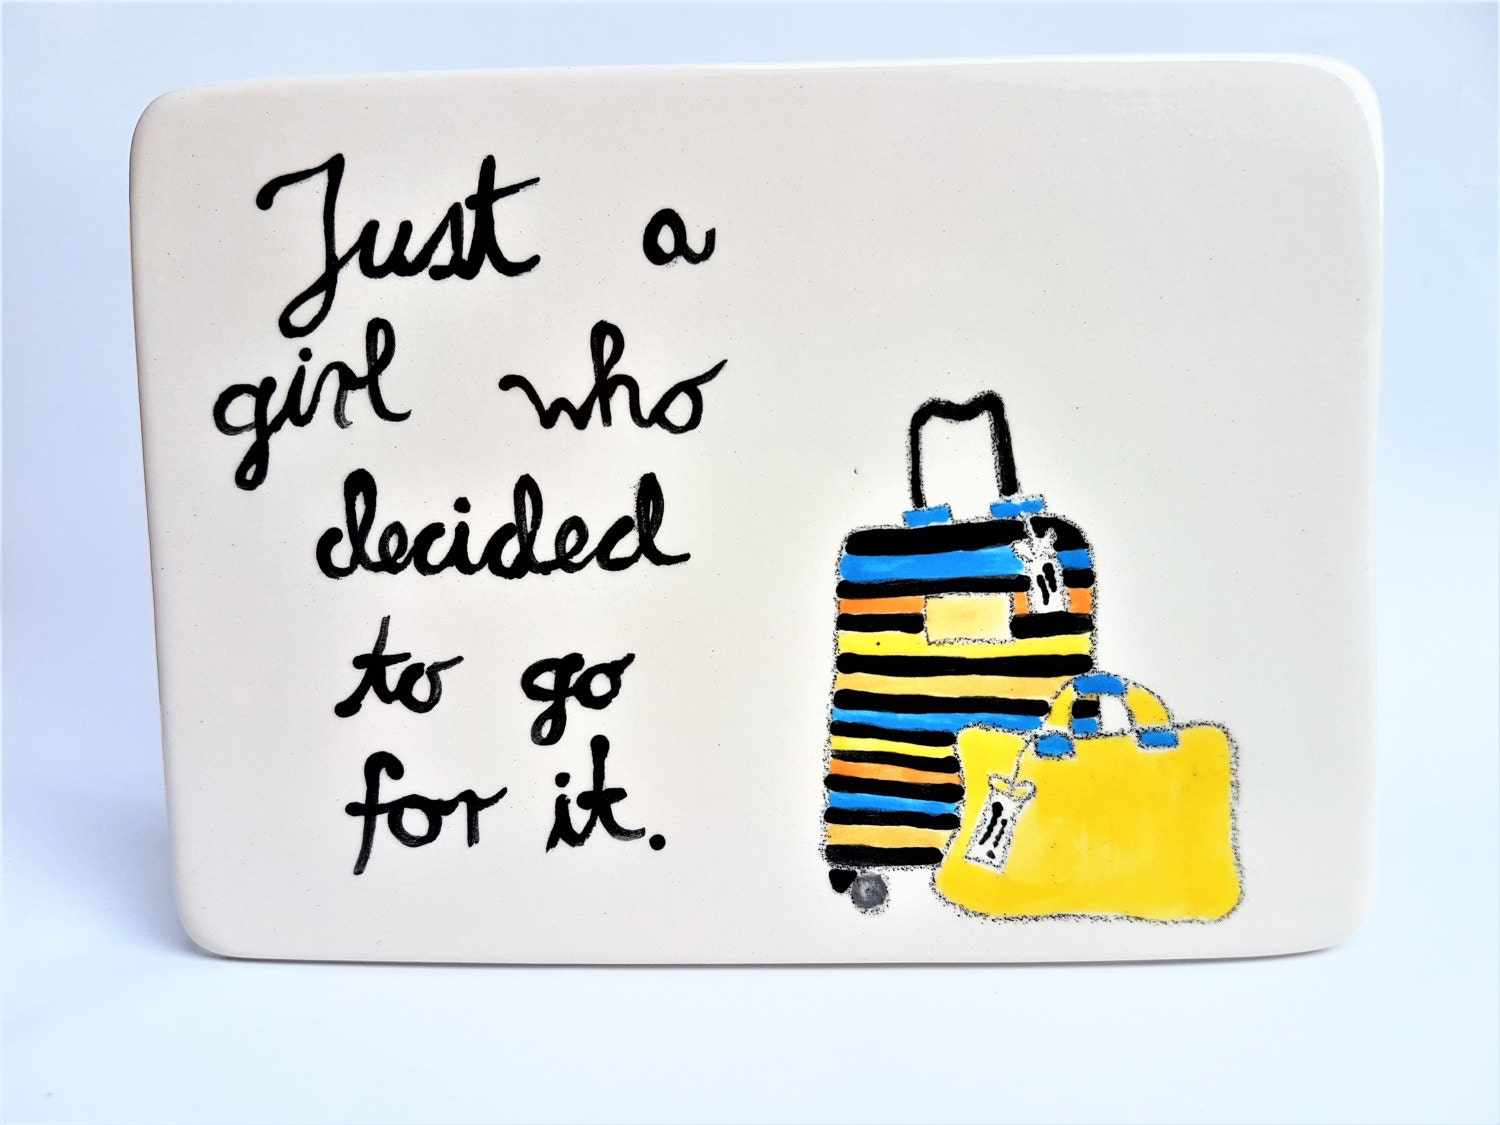 Empowered women, Ceramic tile, Quotes, Girl, Travel gifts ...